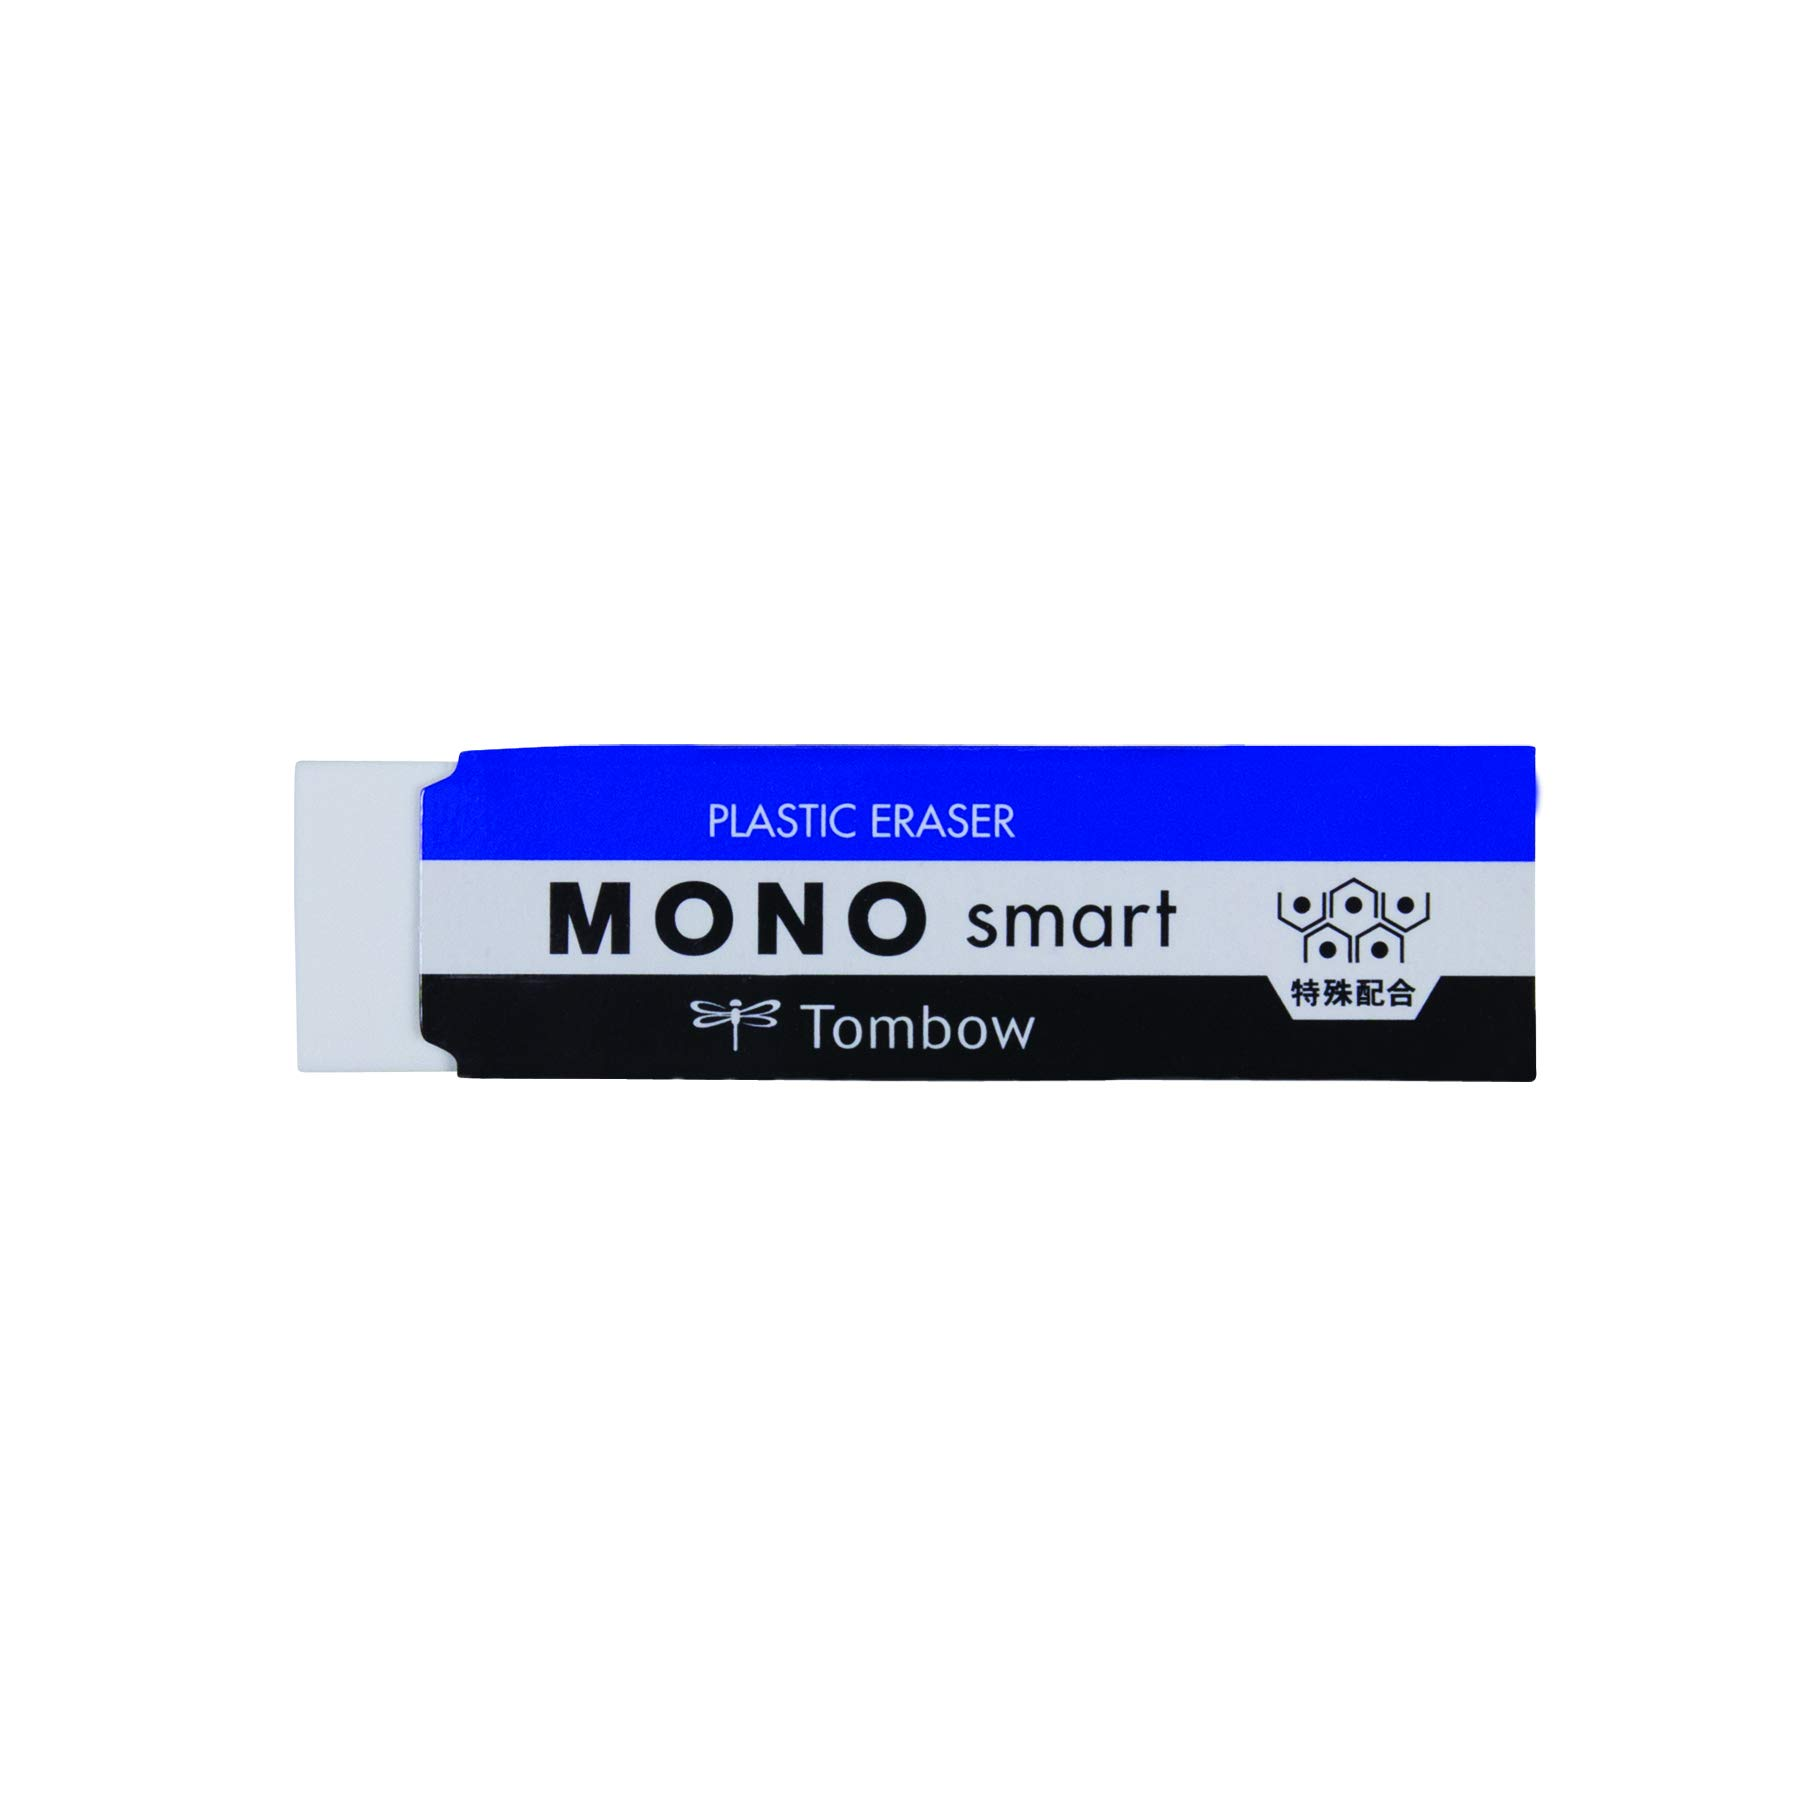 Tombow 57335 Mono Smart Eraser, White, 1 Pack. Ultra Slim...